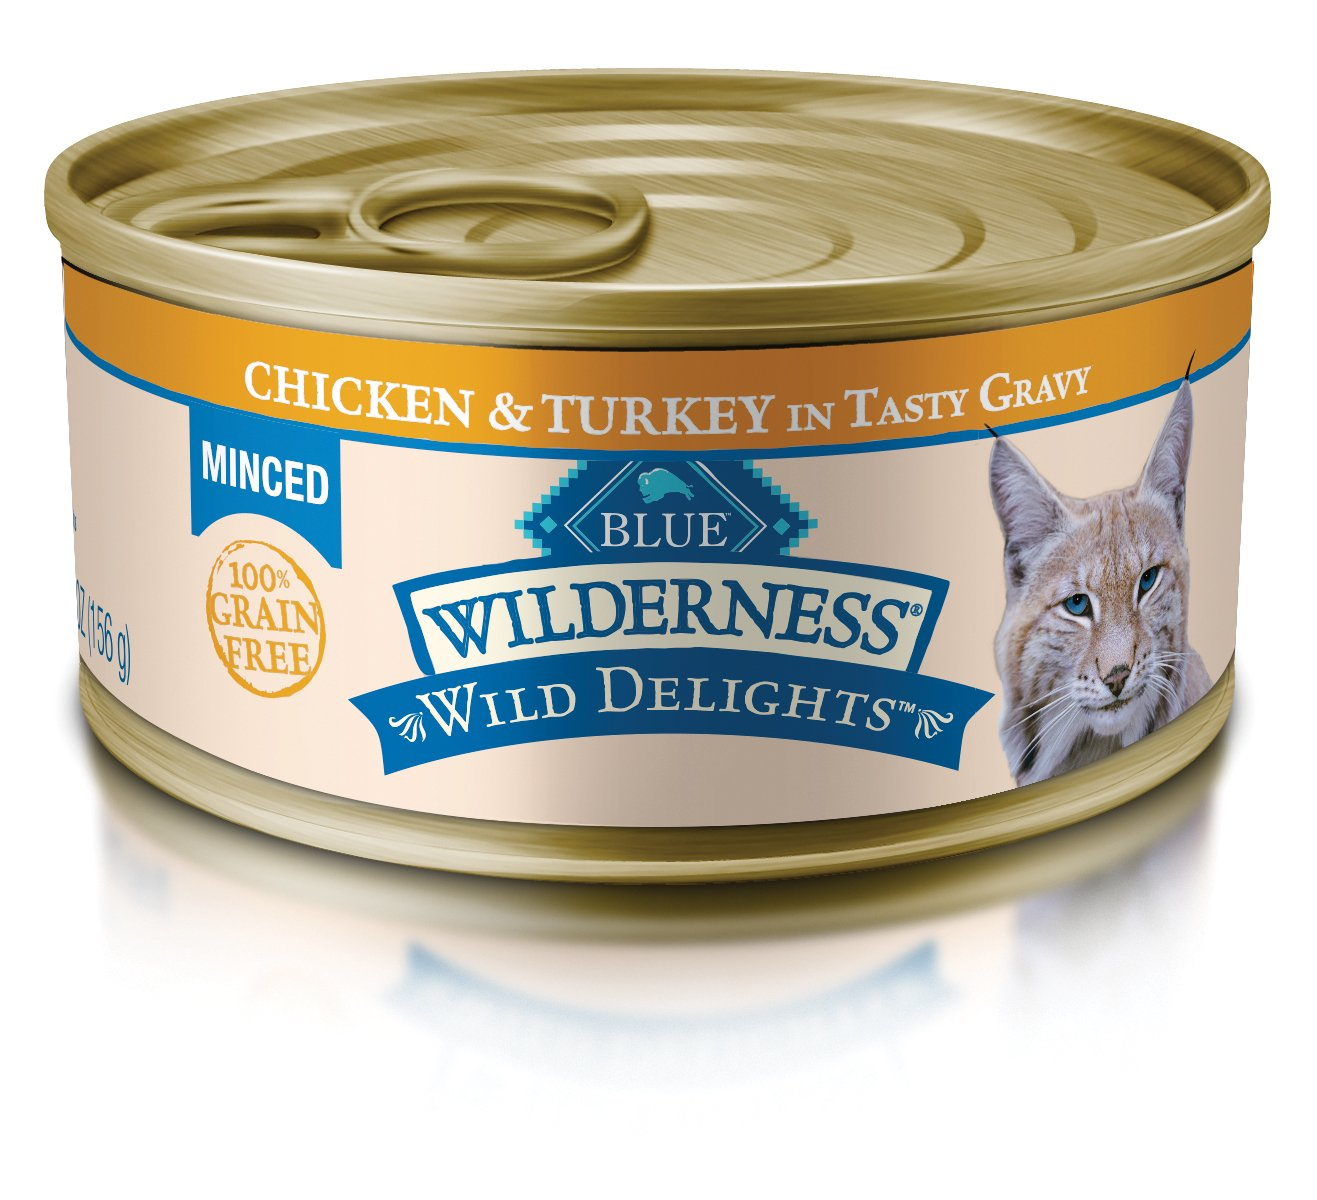 Blue Wilderness Wild Delights Adult Grain Free Minced Chicken & Turkey In Tasty Gravy Wet Cat Food 5.5-Oz (Pack Of 24) by Blue Buffalo